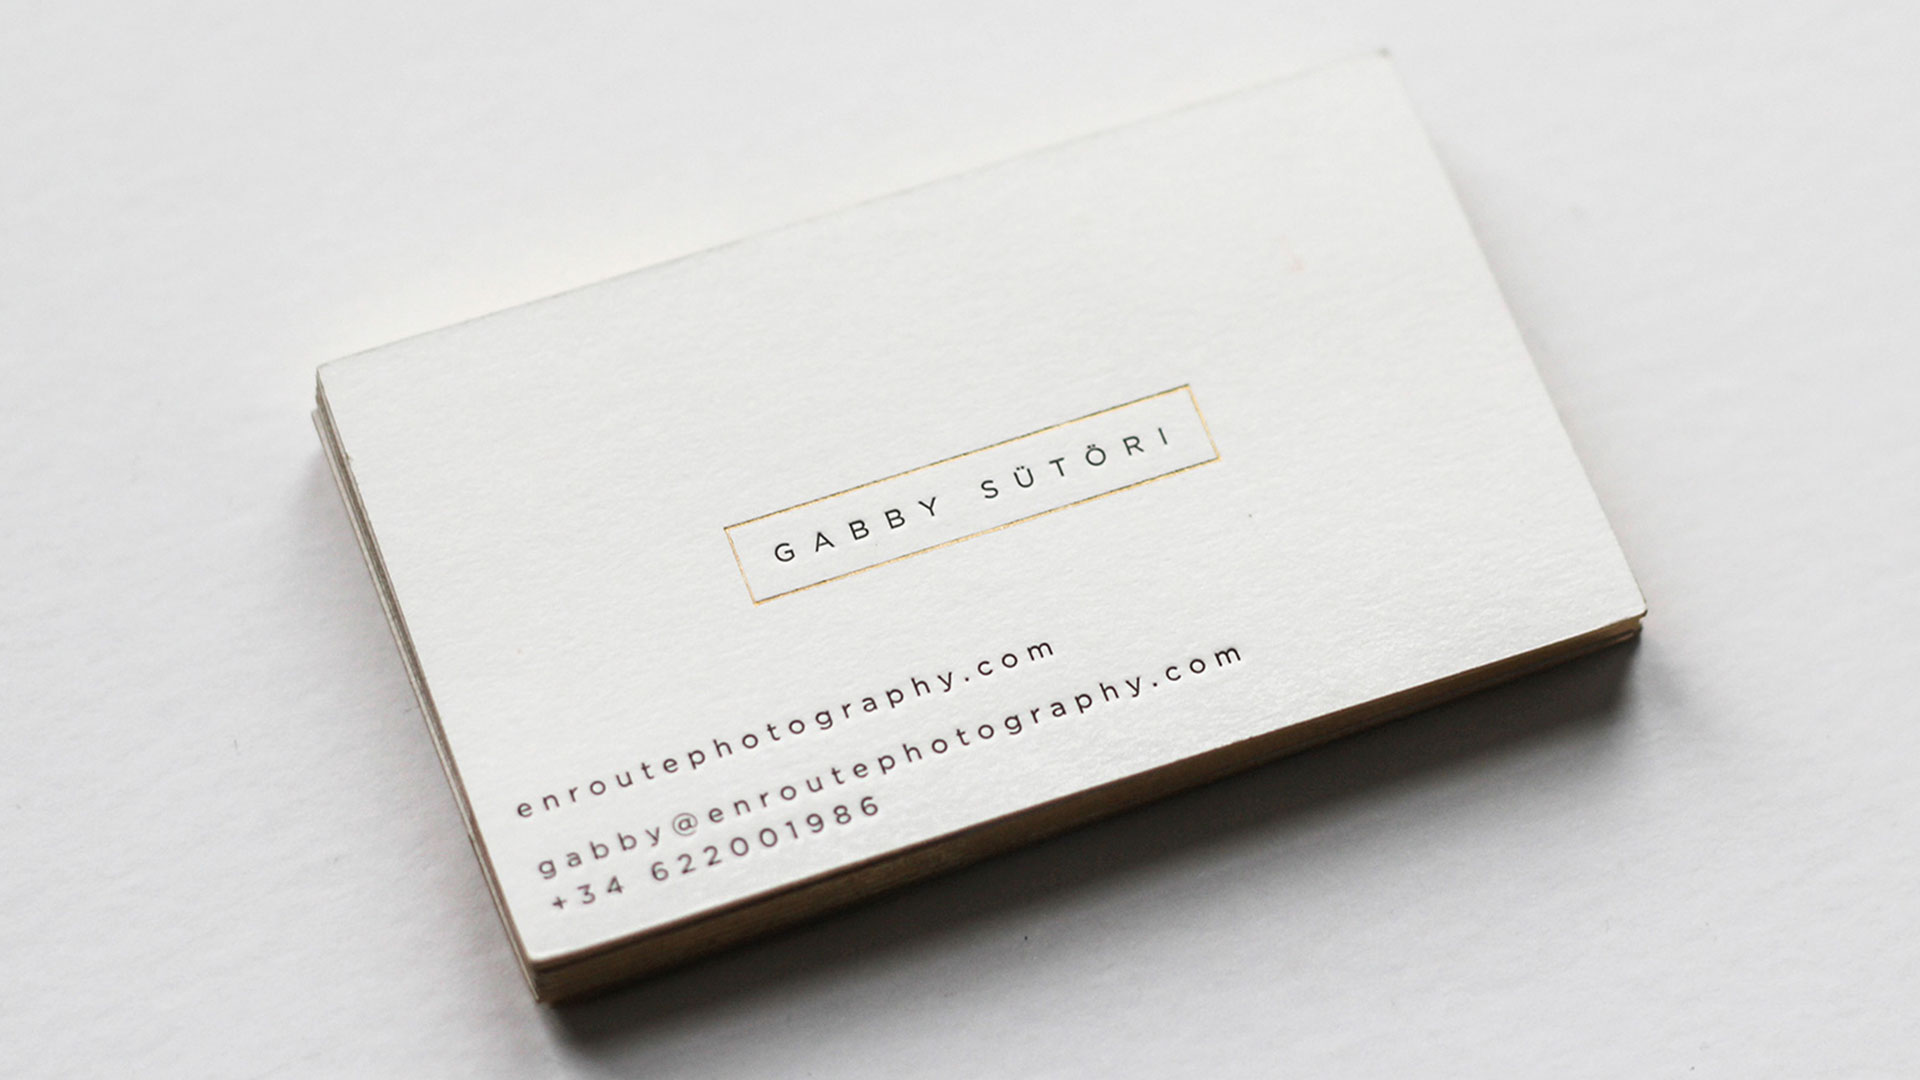 En route photography business cards and identity dimensions 35 x 2 print quantity 500 printing method letterpress number of colors 2 colors black gold foil finishing and binding foil edging reheart Gallery